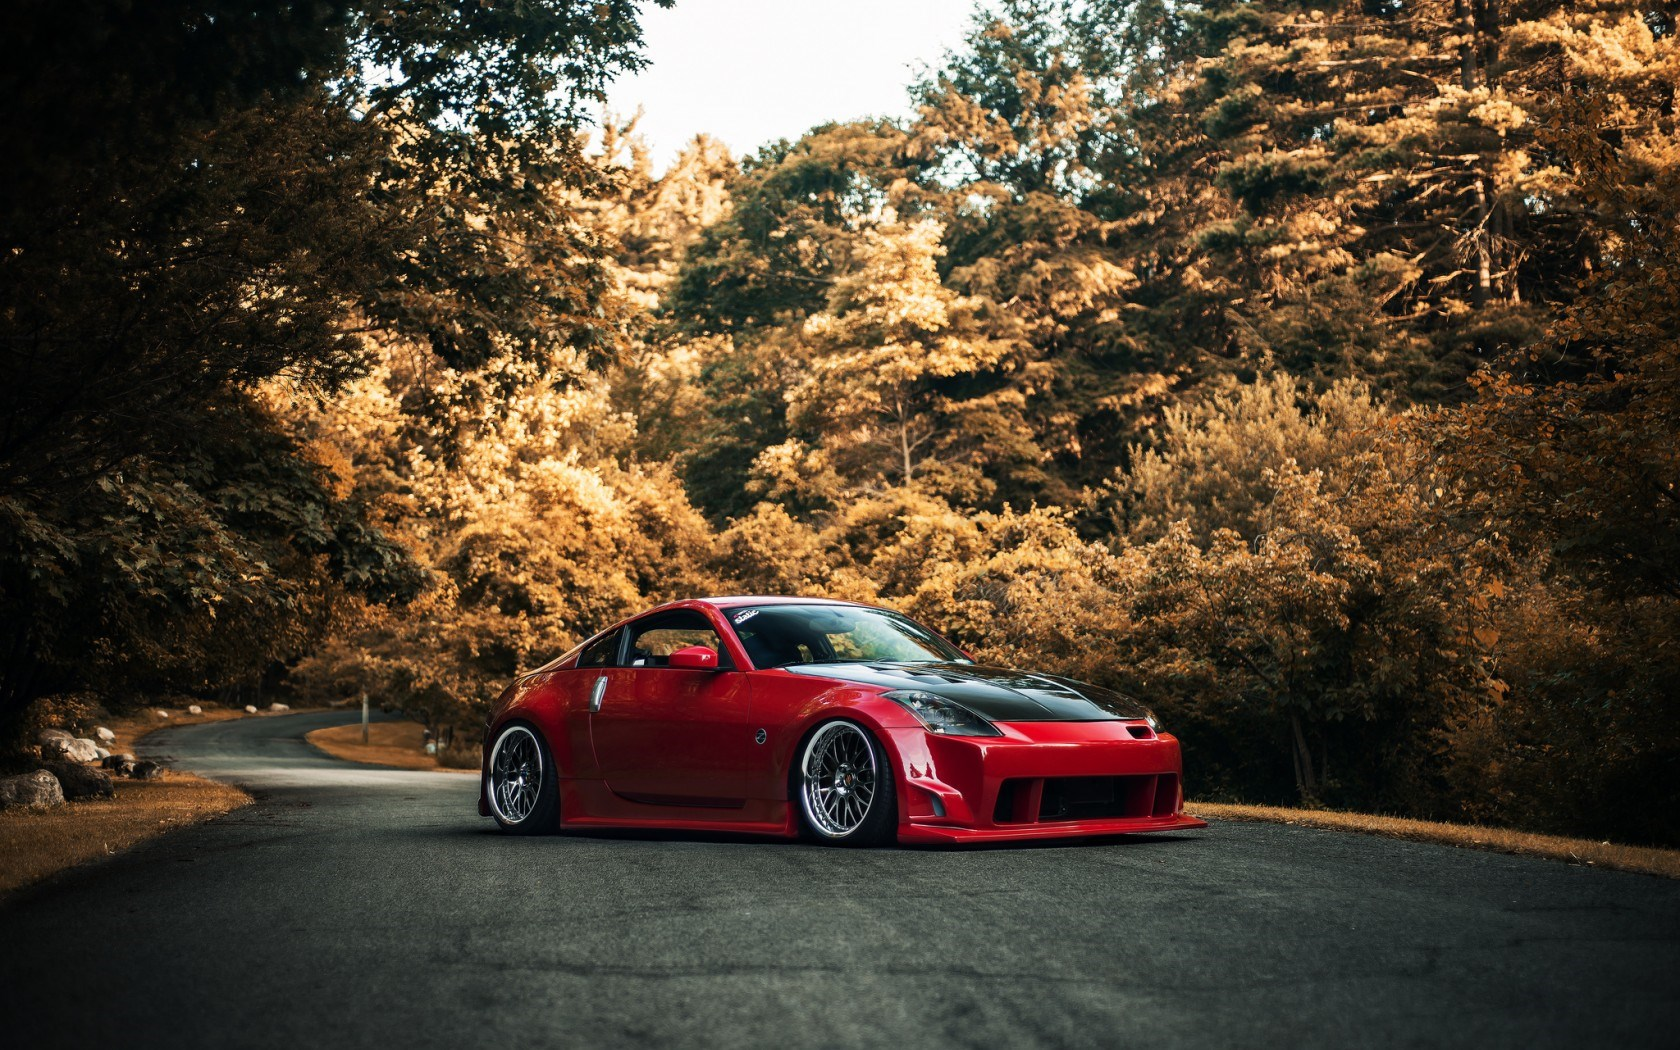 Nissan 350Z Red Car Tuning Road Autumn